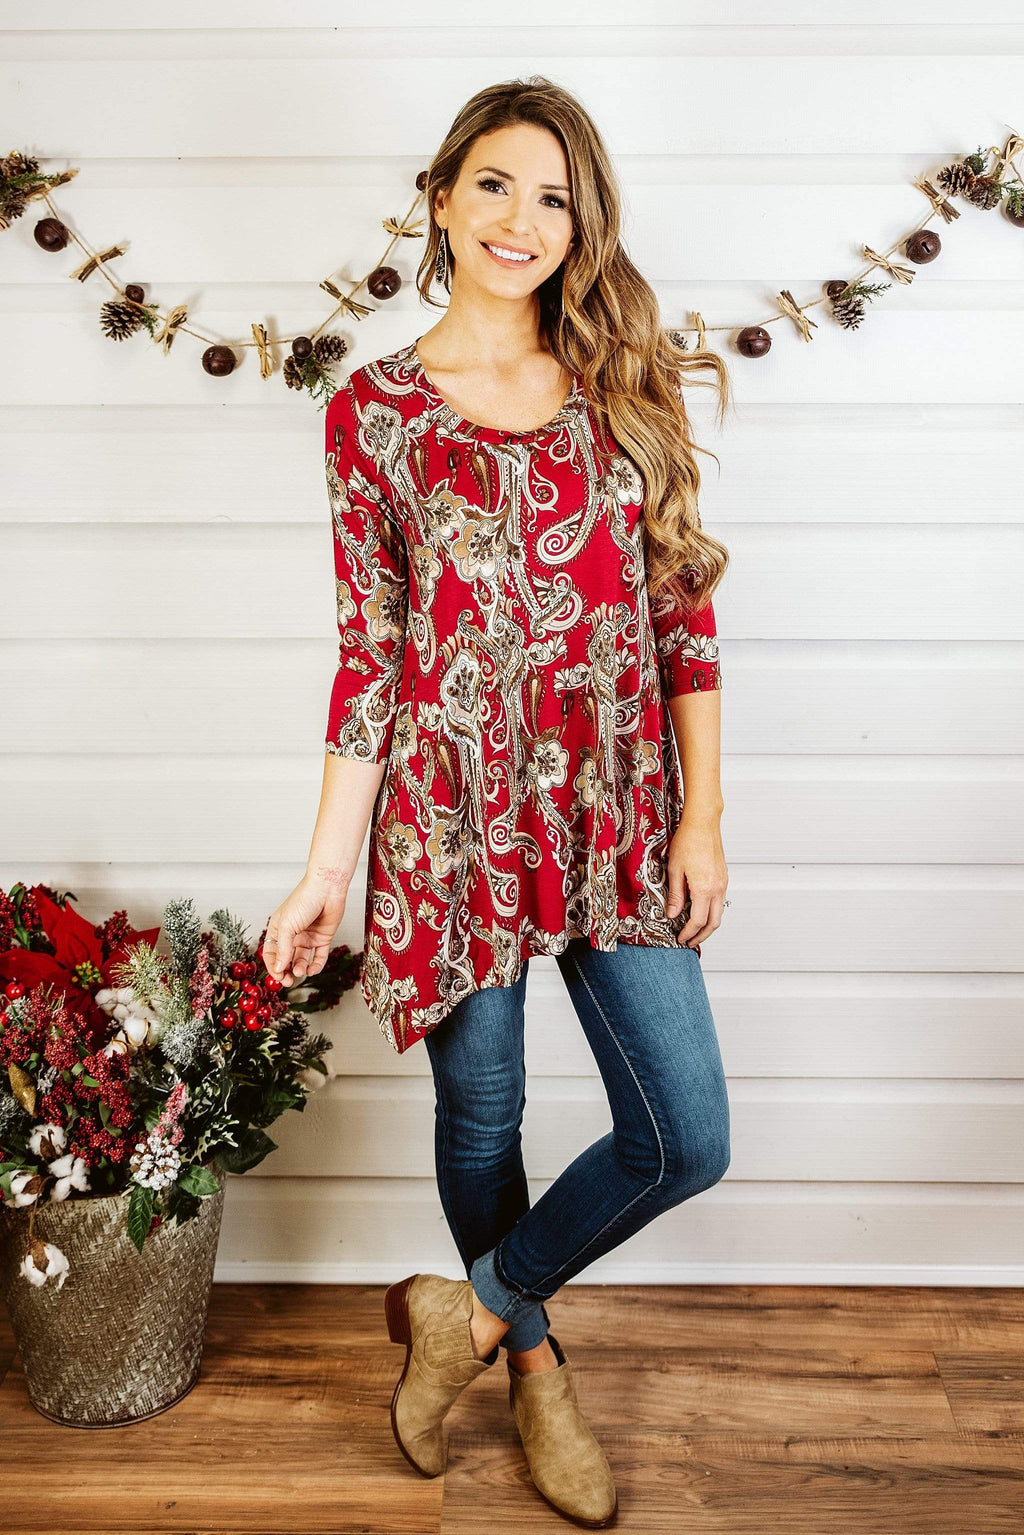 Glitzy Girlz Boutique Some Feelings Top, Burgundy/Black